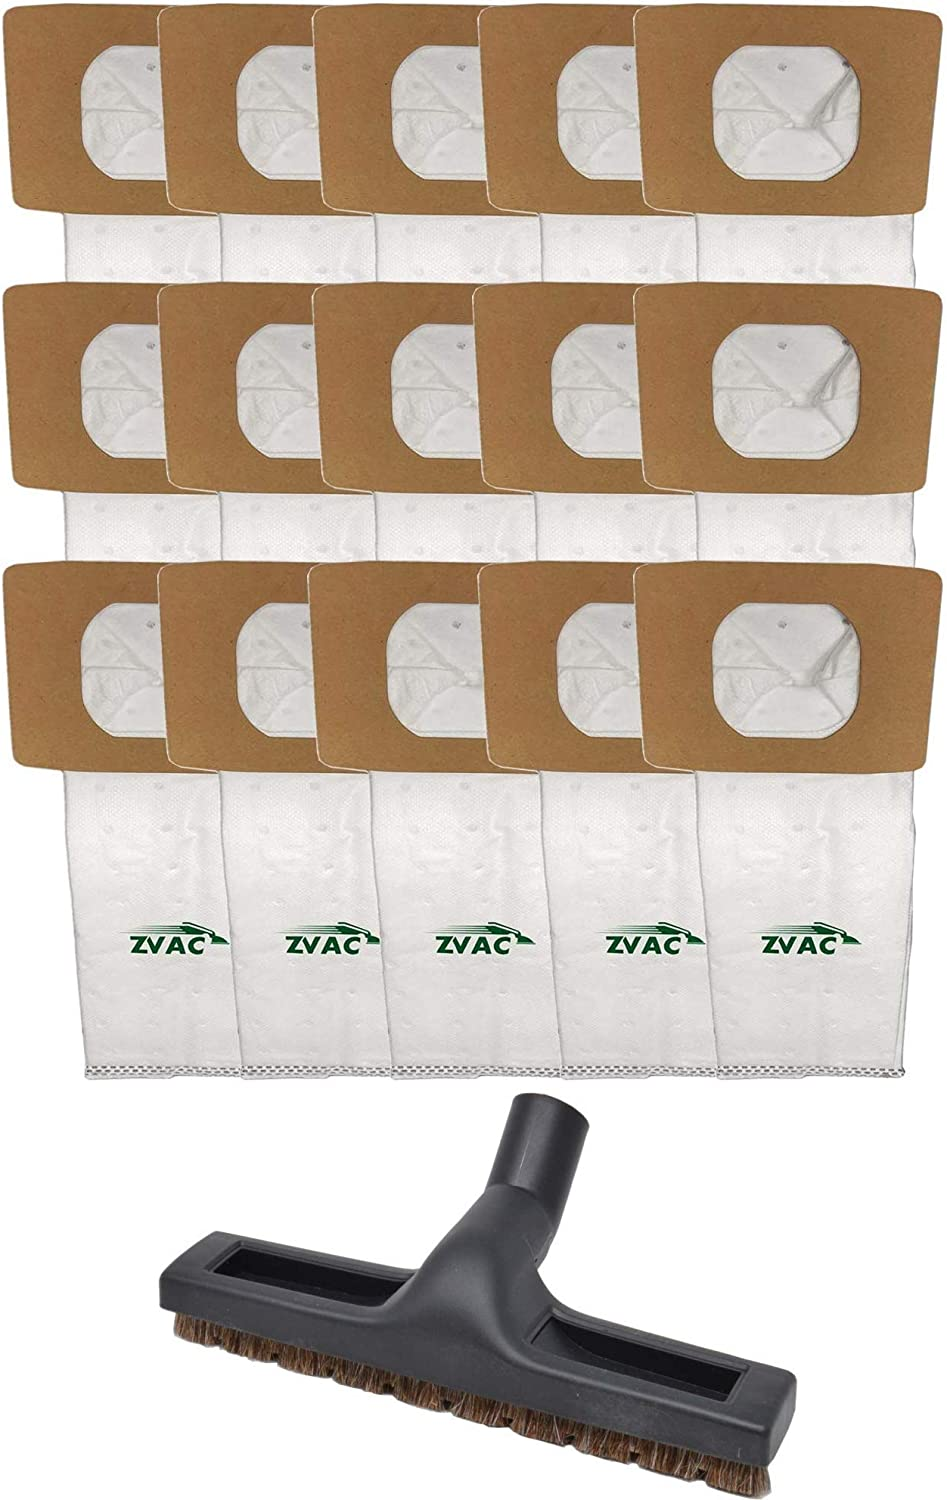 ZVac Hoover Replacement Vacuum Cleaner Bags - 15pc Cleaning Accessories - Works with Platinum Upright and Canister Types - High Performance Multi-Layer Filtration with 1 & 1/4 inches Floor Brush